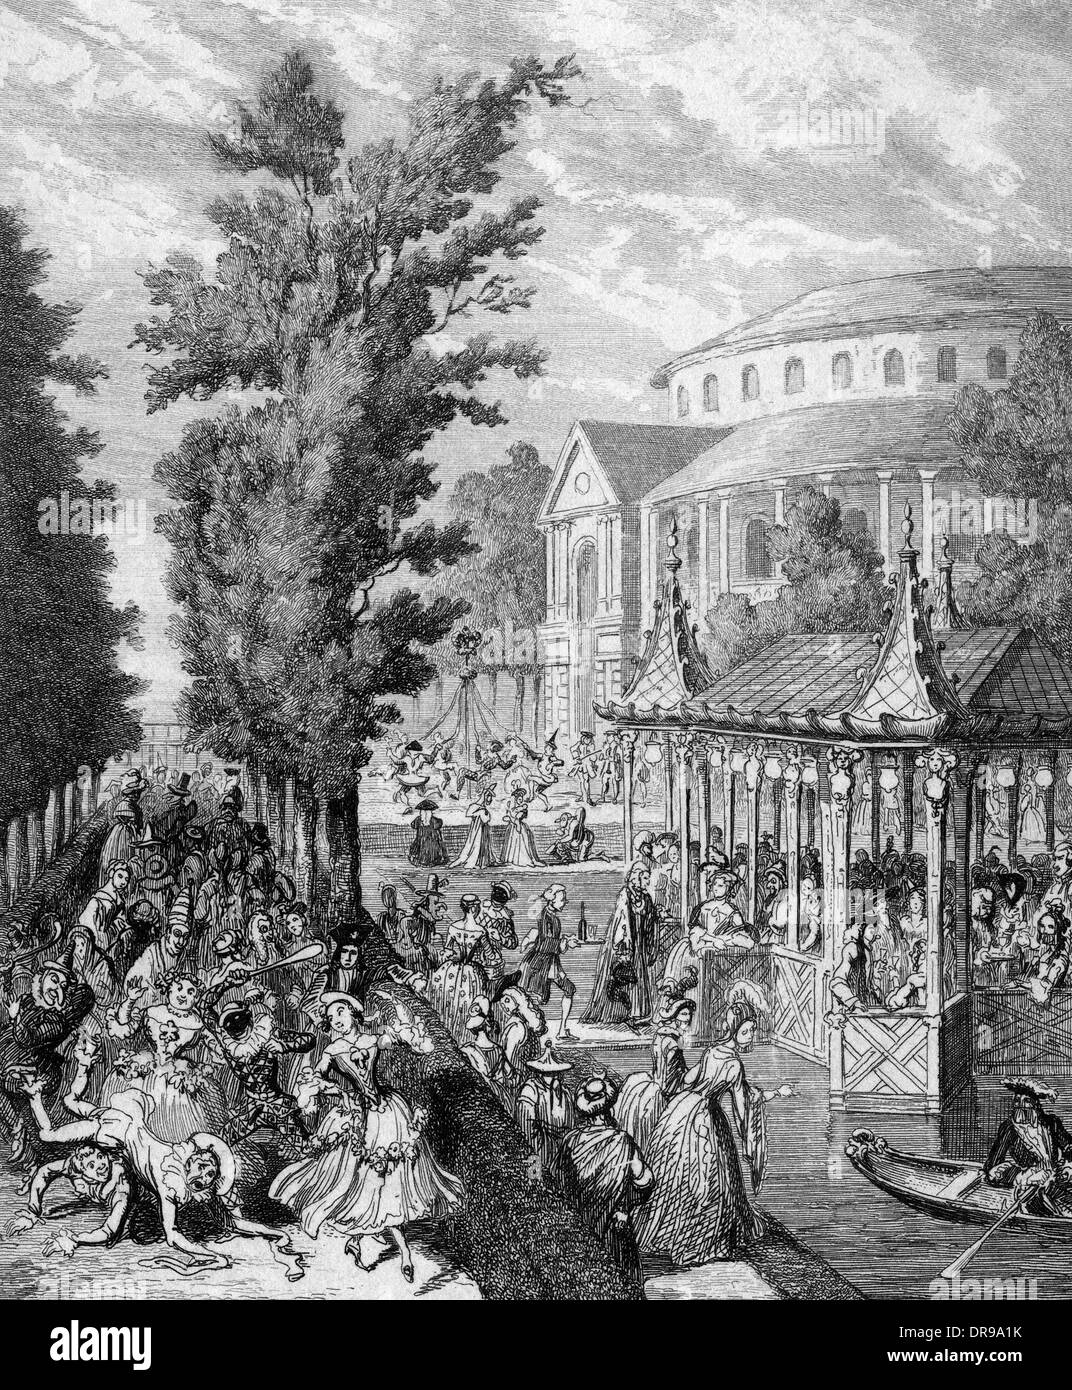 RANELAGH IN 1750 - Stock Image